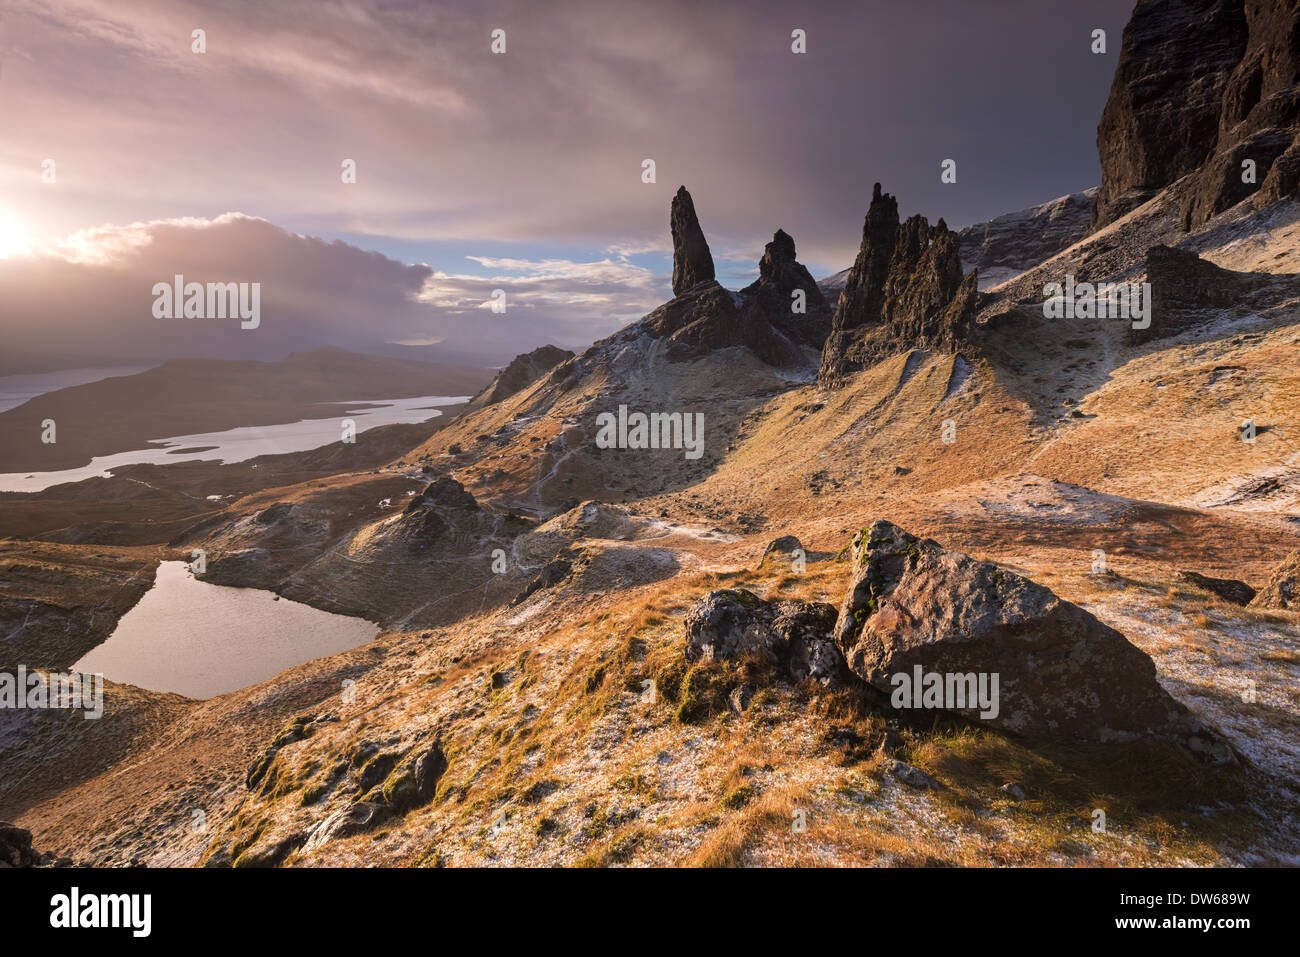 Dramatic scenery at the Old Man of Storr, Isle of Skye, Scotland. Winter (December) 2013. - Stock Image